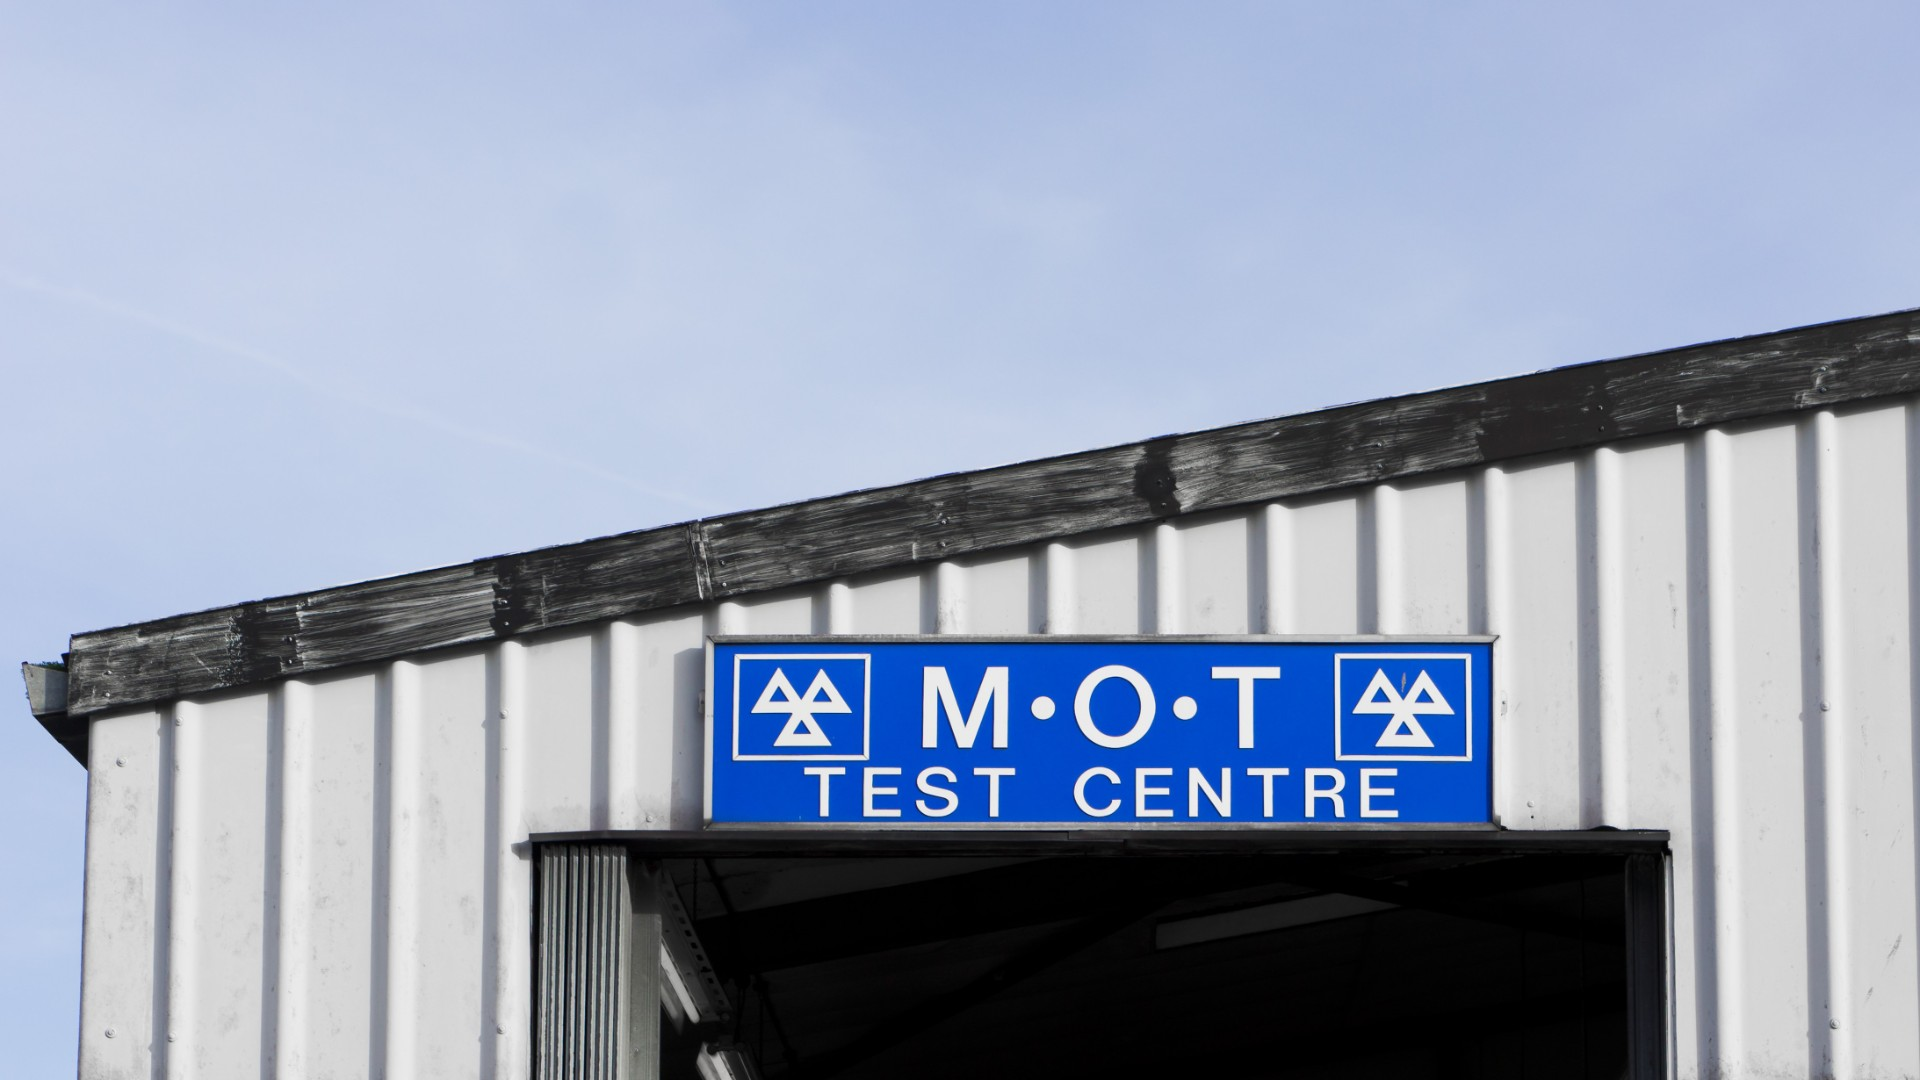 Half a million cars have a late MOT test in January